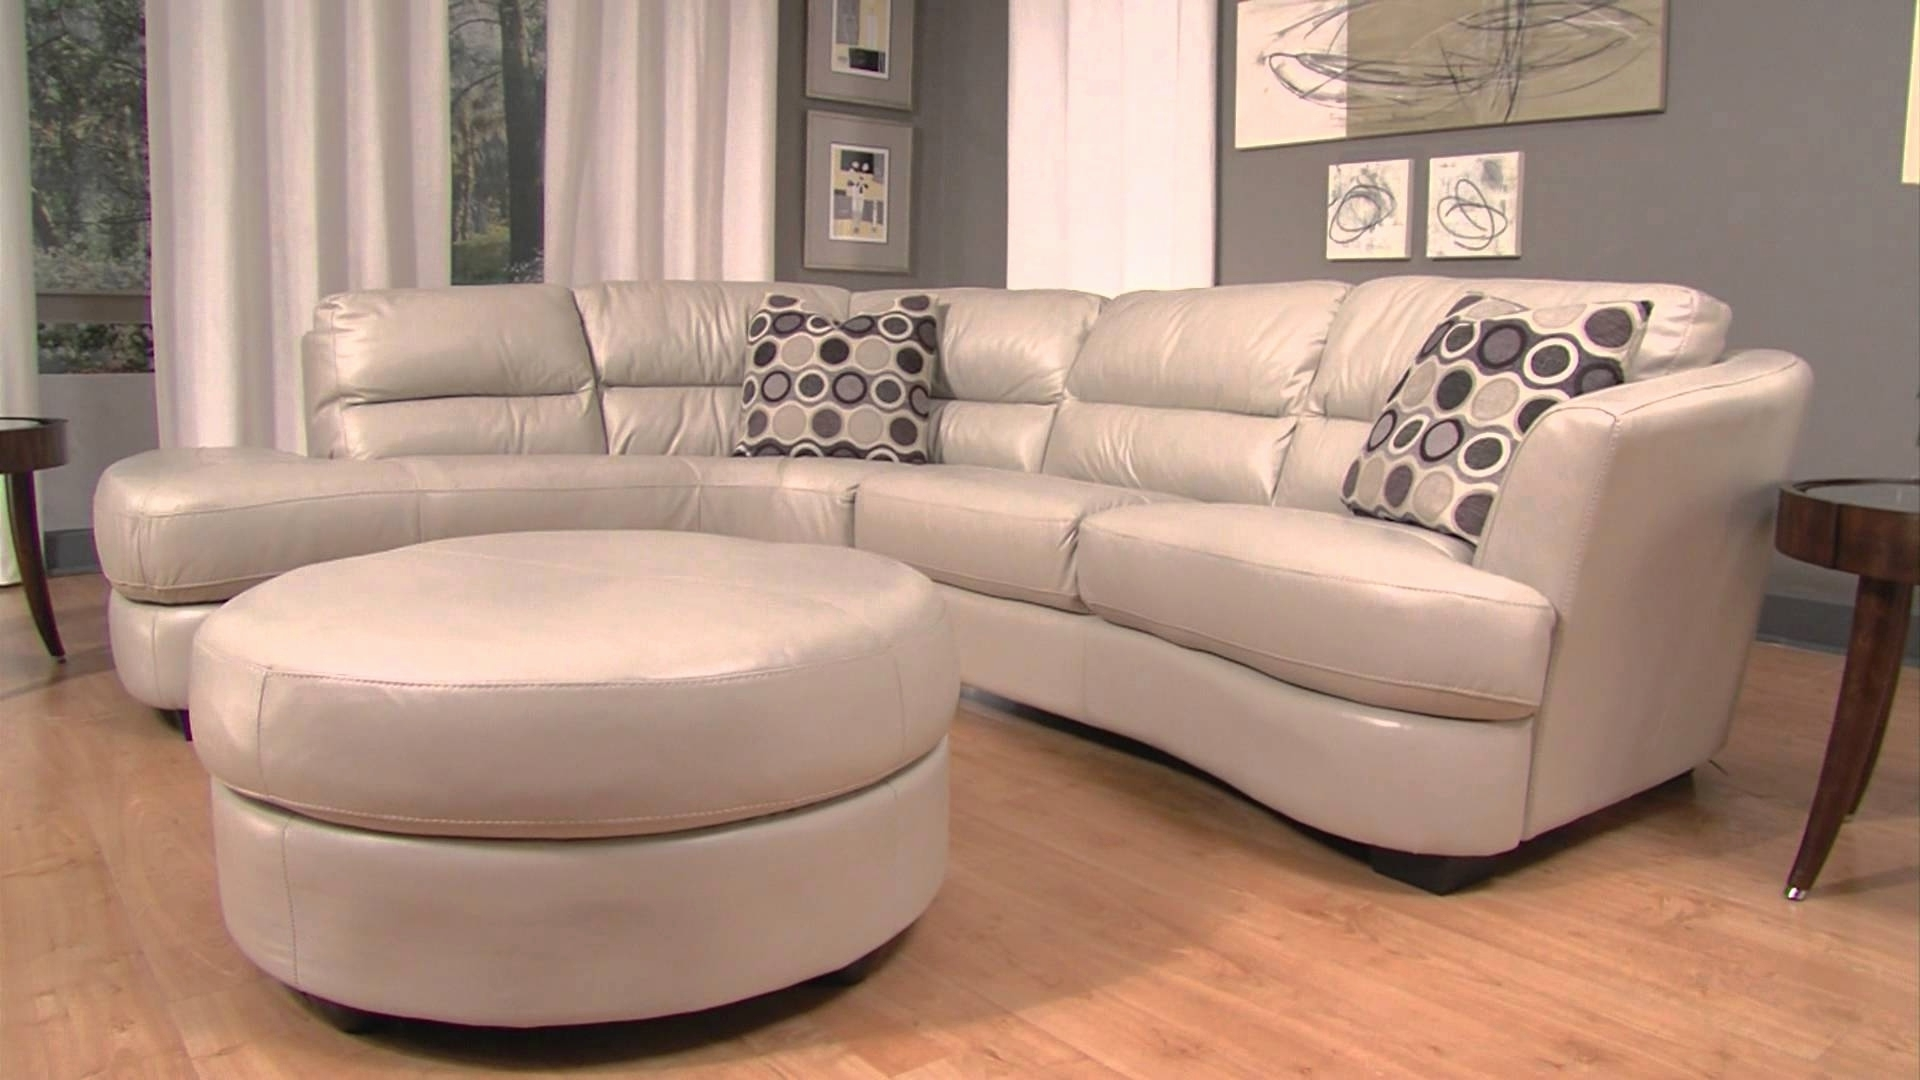 Widely Used Inspirational Natuzzi Sectional Sofa 2018 – Couches And Sofas Ideas Throughout Sectional Sofas At Chicago (View 13 of 15)